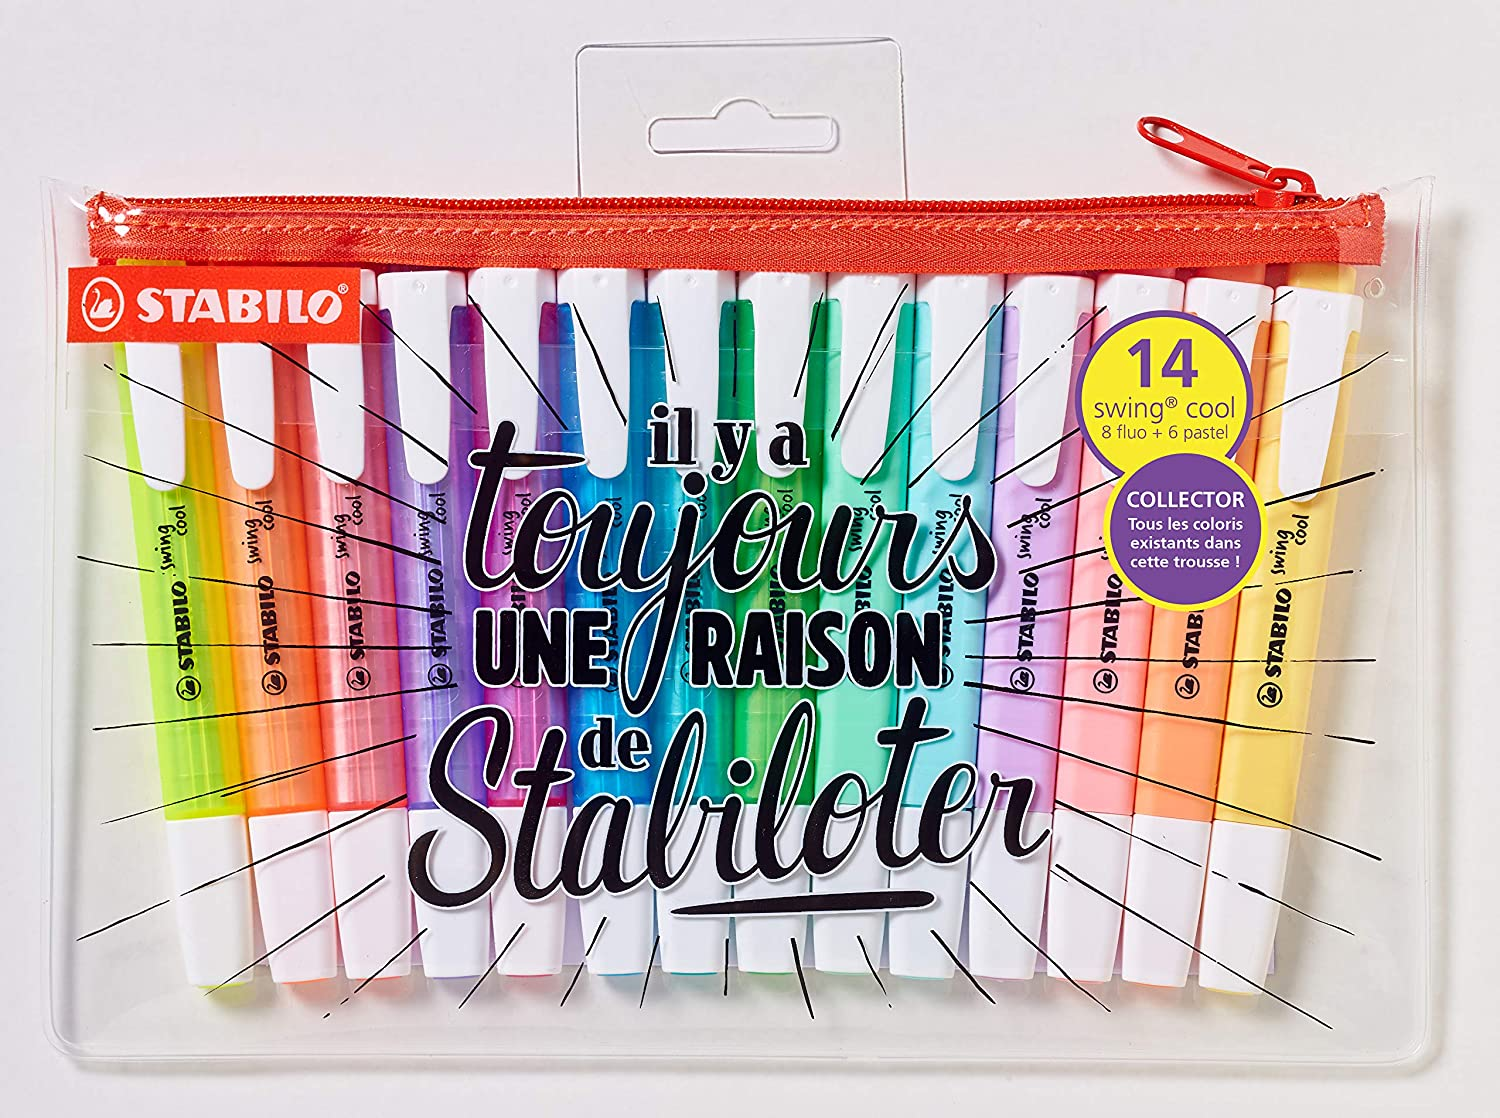 Fresno Mall Highlighter - STABILO swing cool Case 14pc Beauty products Pencil with